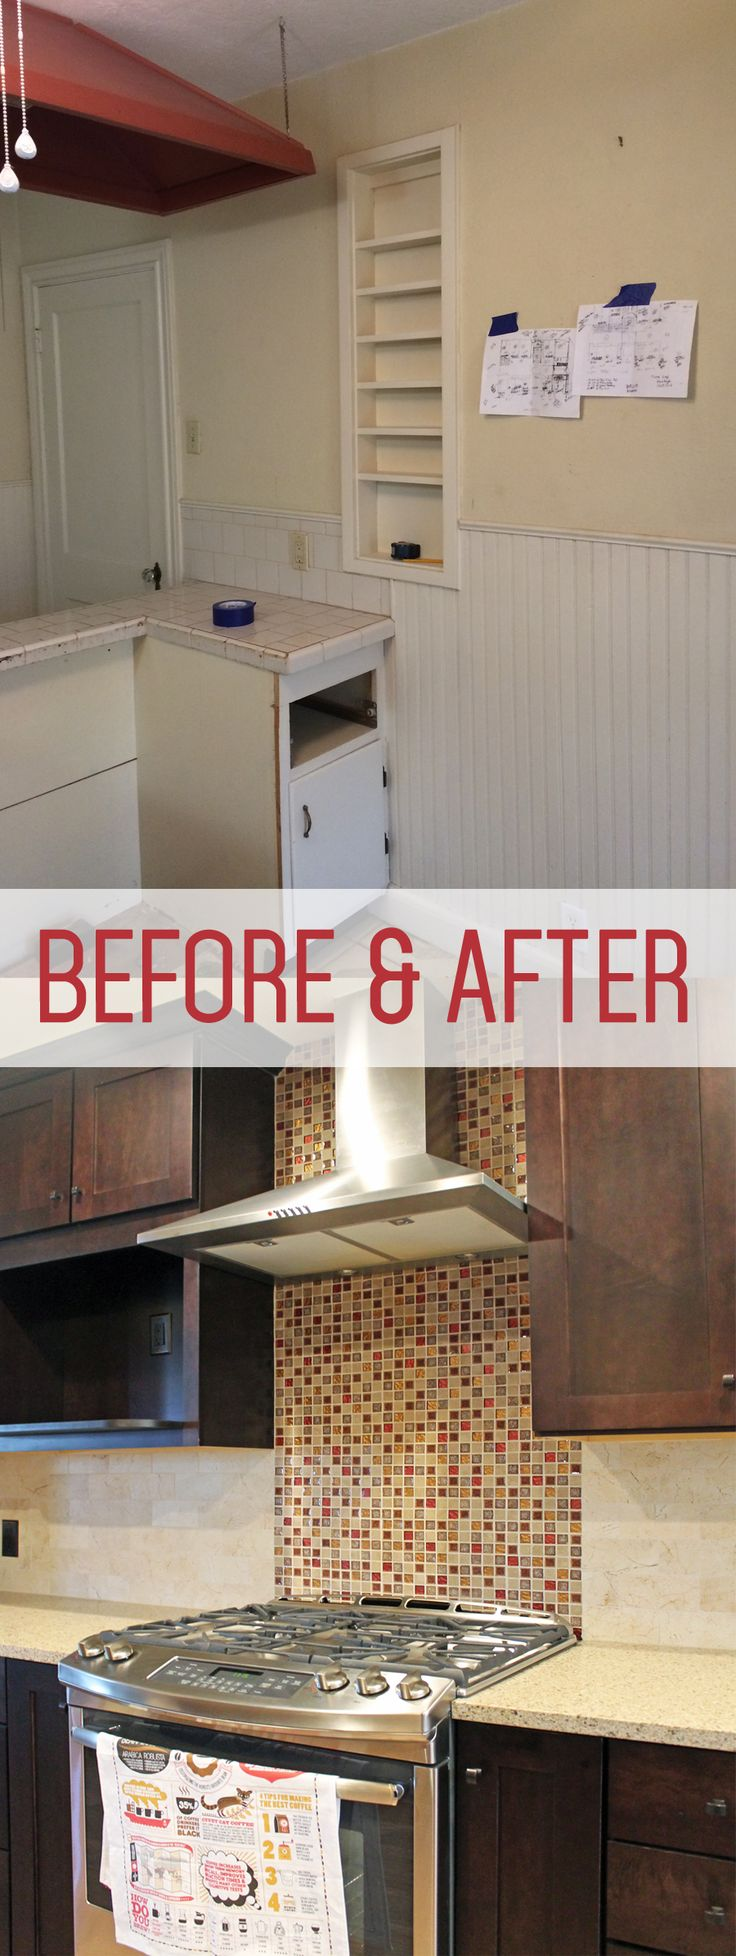 Kitchen remodel before and after. | Before and After